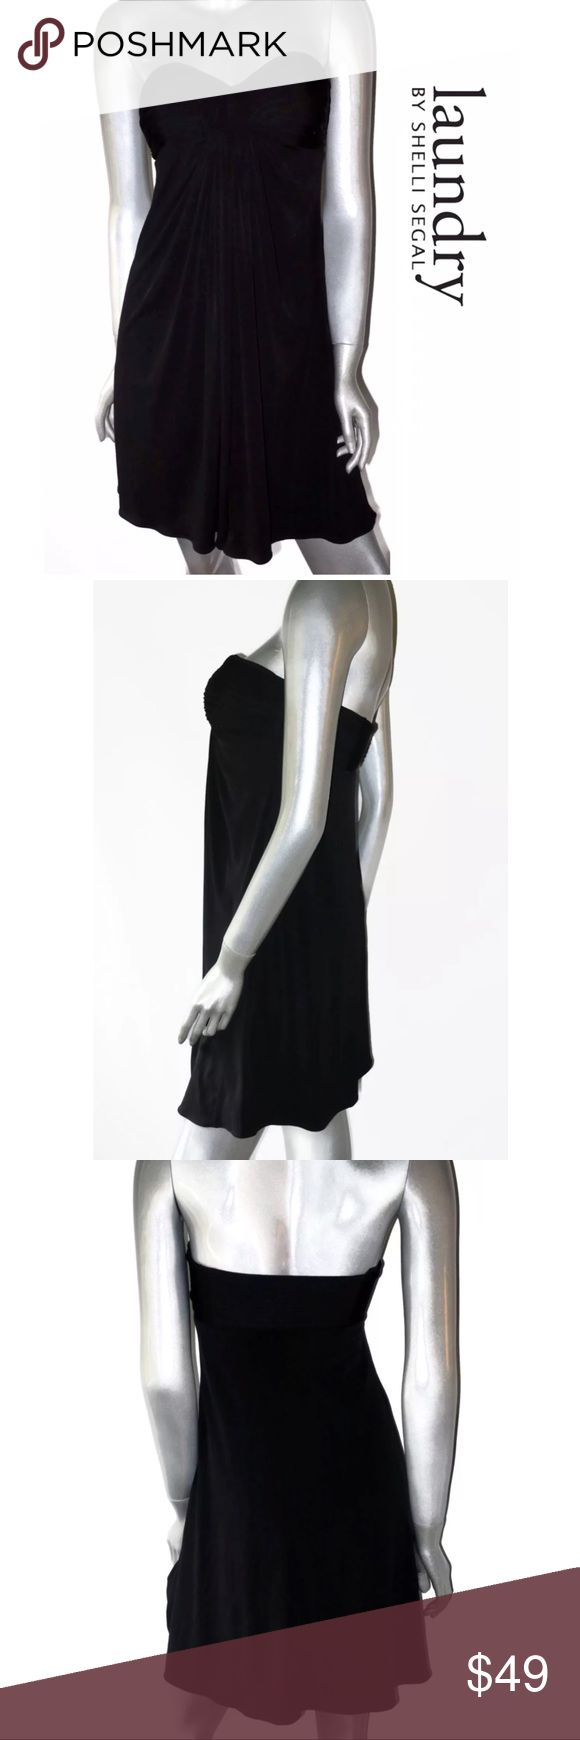 "Laundry Shelli Segal Little Black Cocktail Dress Laundry By Shelli Segal Little Black Cocktail Dress. Womens Sz: 6  Measurements Lying Flat: Armpit to armpit- 16"" Length- 30""  Condition: Nice shape, super sexy. Pre-owned.  ALL ITEMS COME FROM A SMOKE-FREE HOME Laundry by Shelli Segal Dresses Strapless"